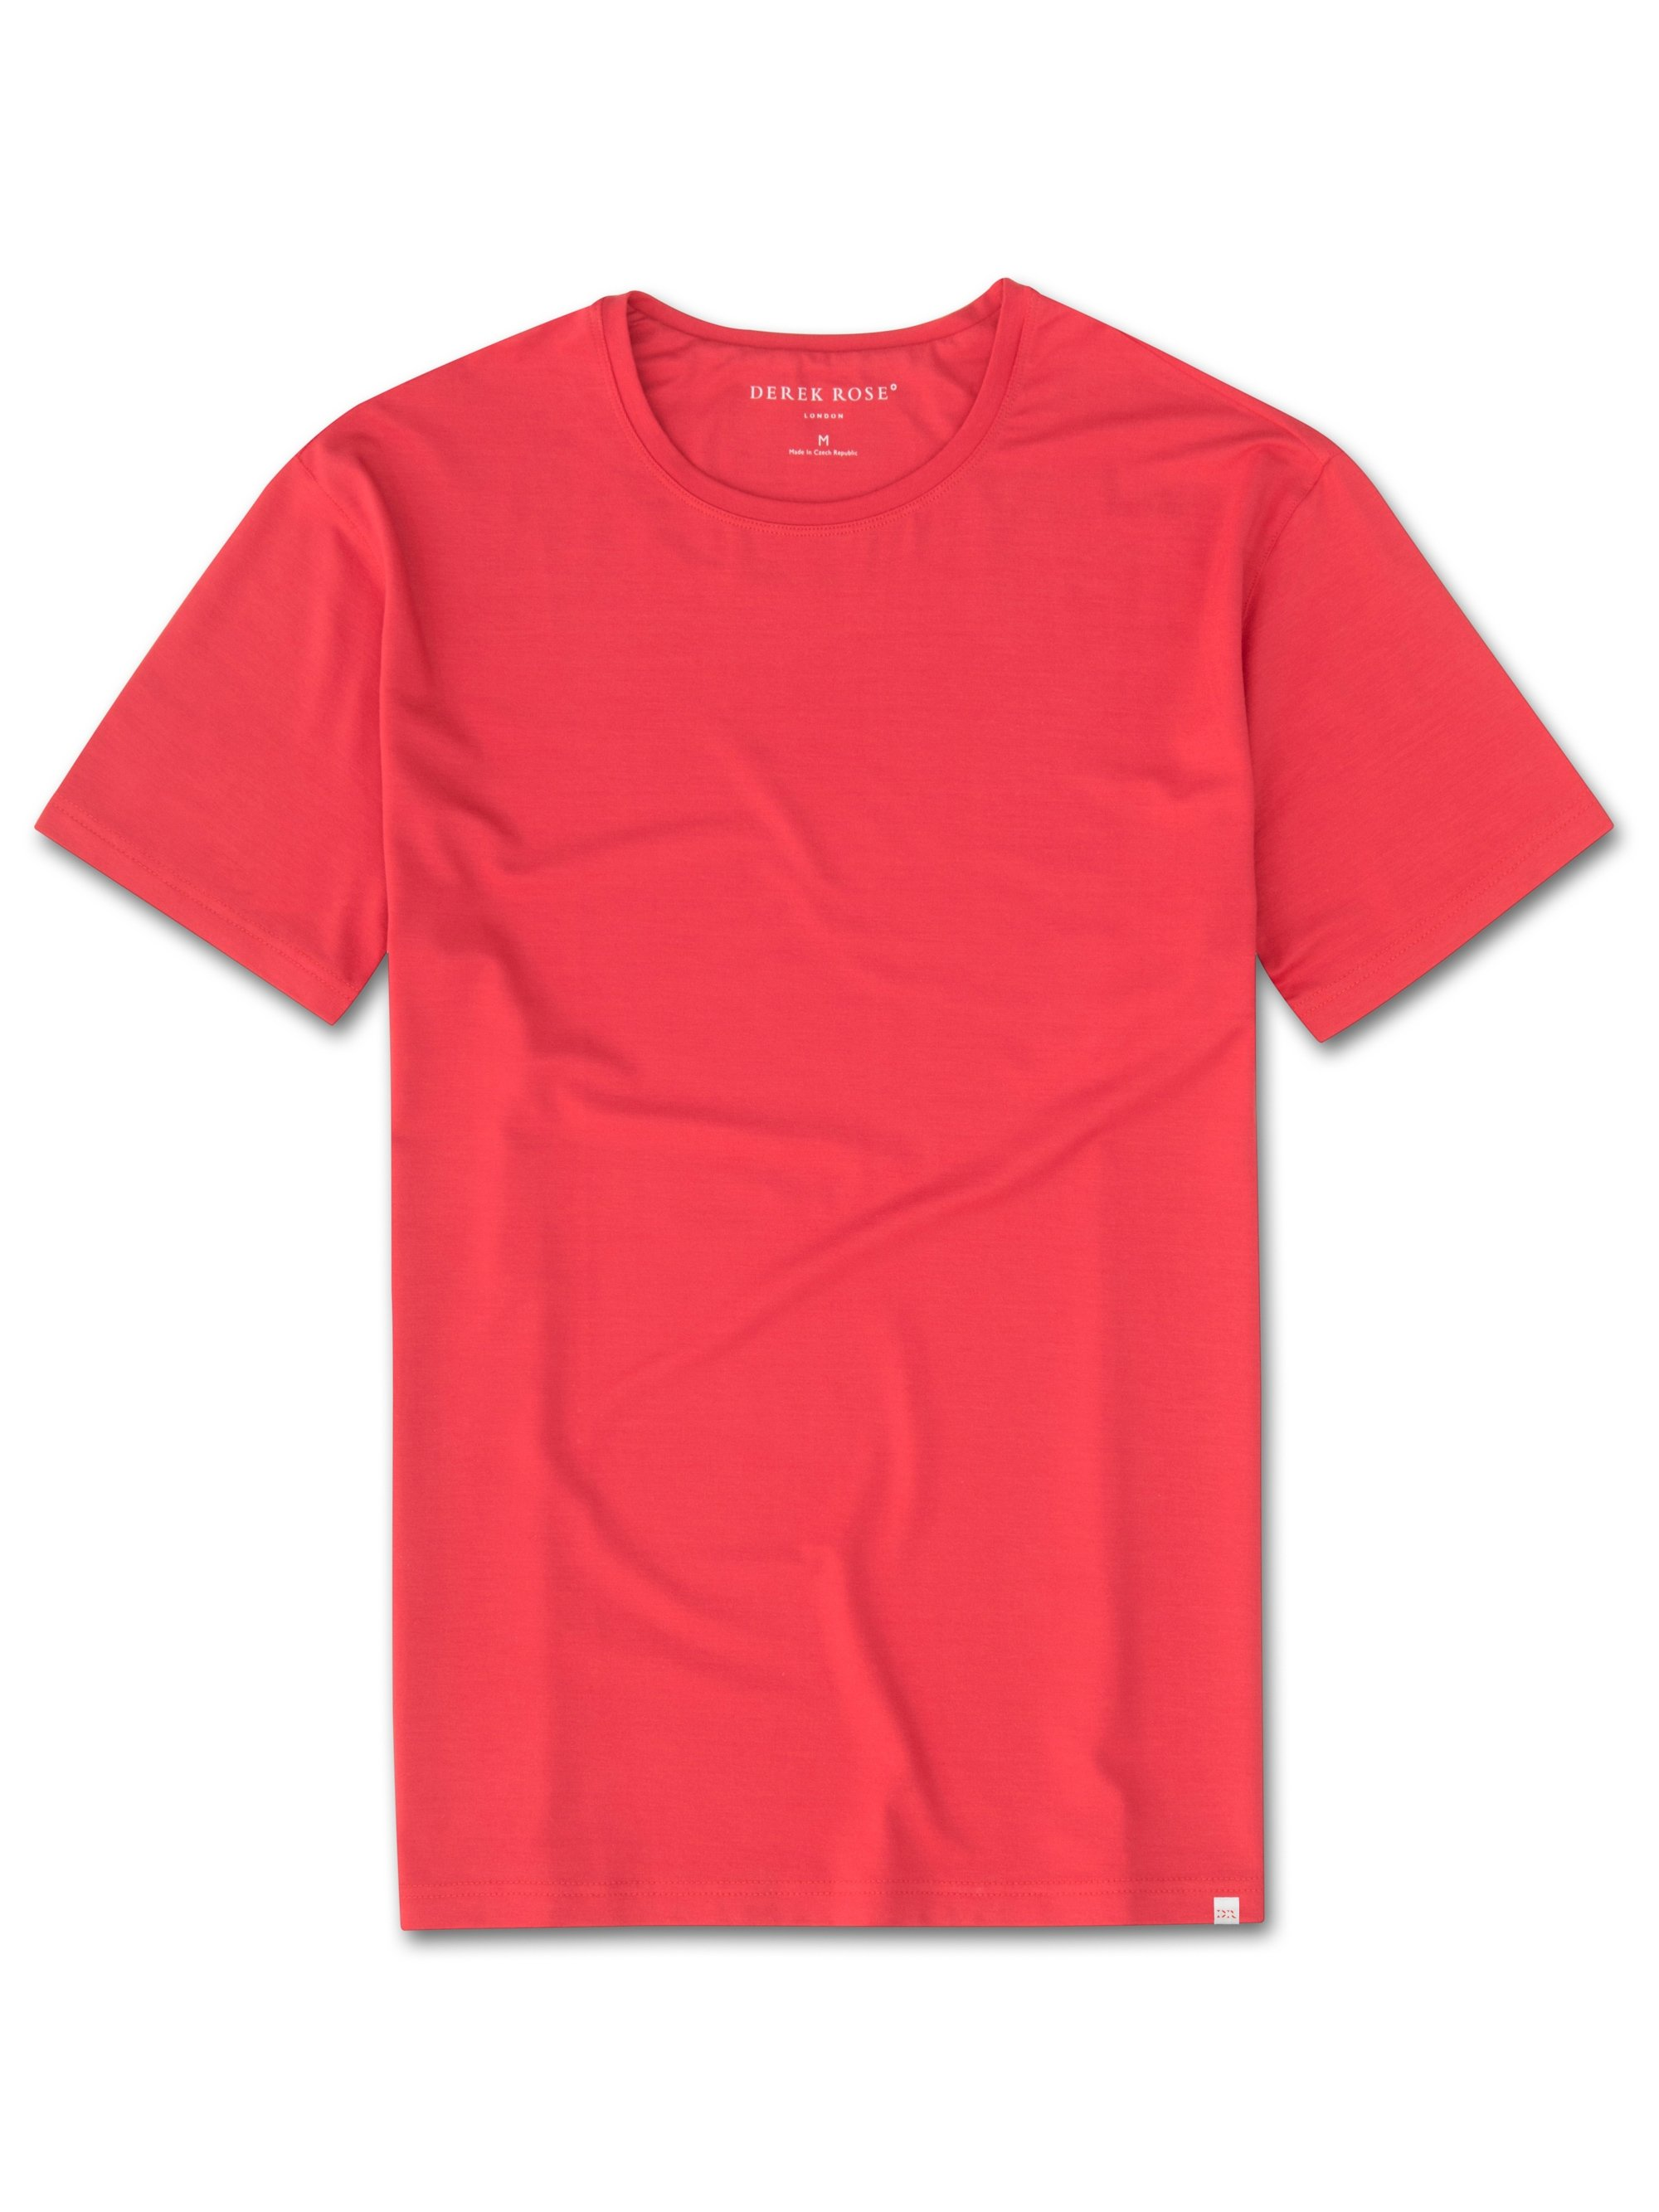 Men's Short Sleeve T-Shirt Basel 6 Micro Modal Stretch Red